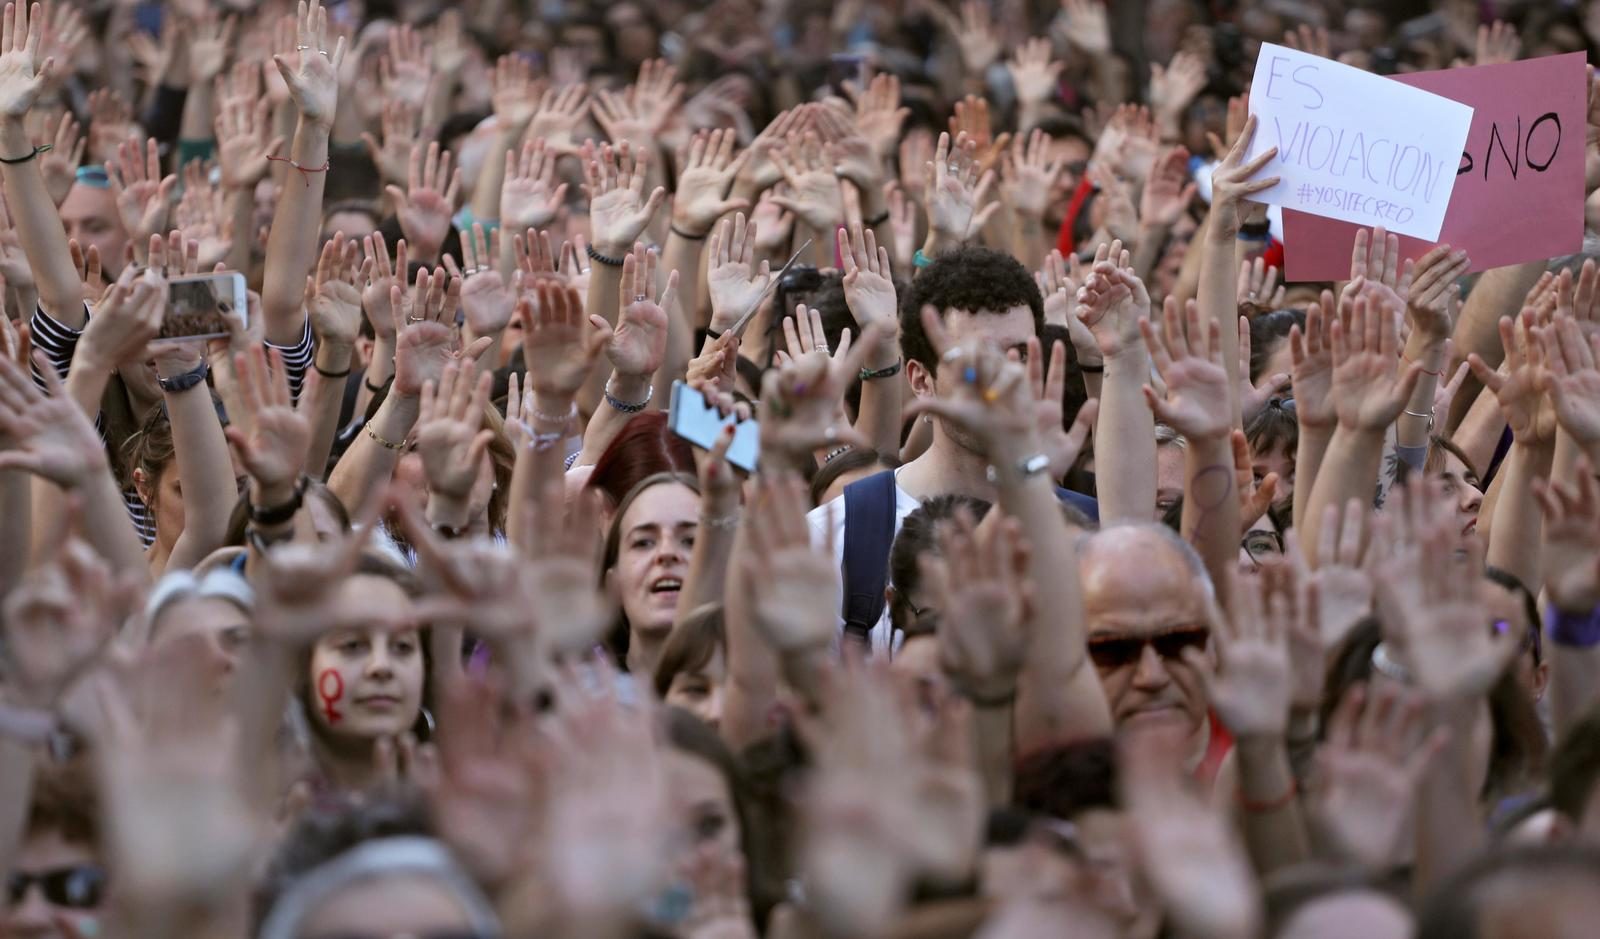 People shout slogans during a protest outside Ministry of Justice in Madrid